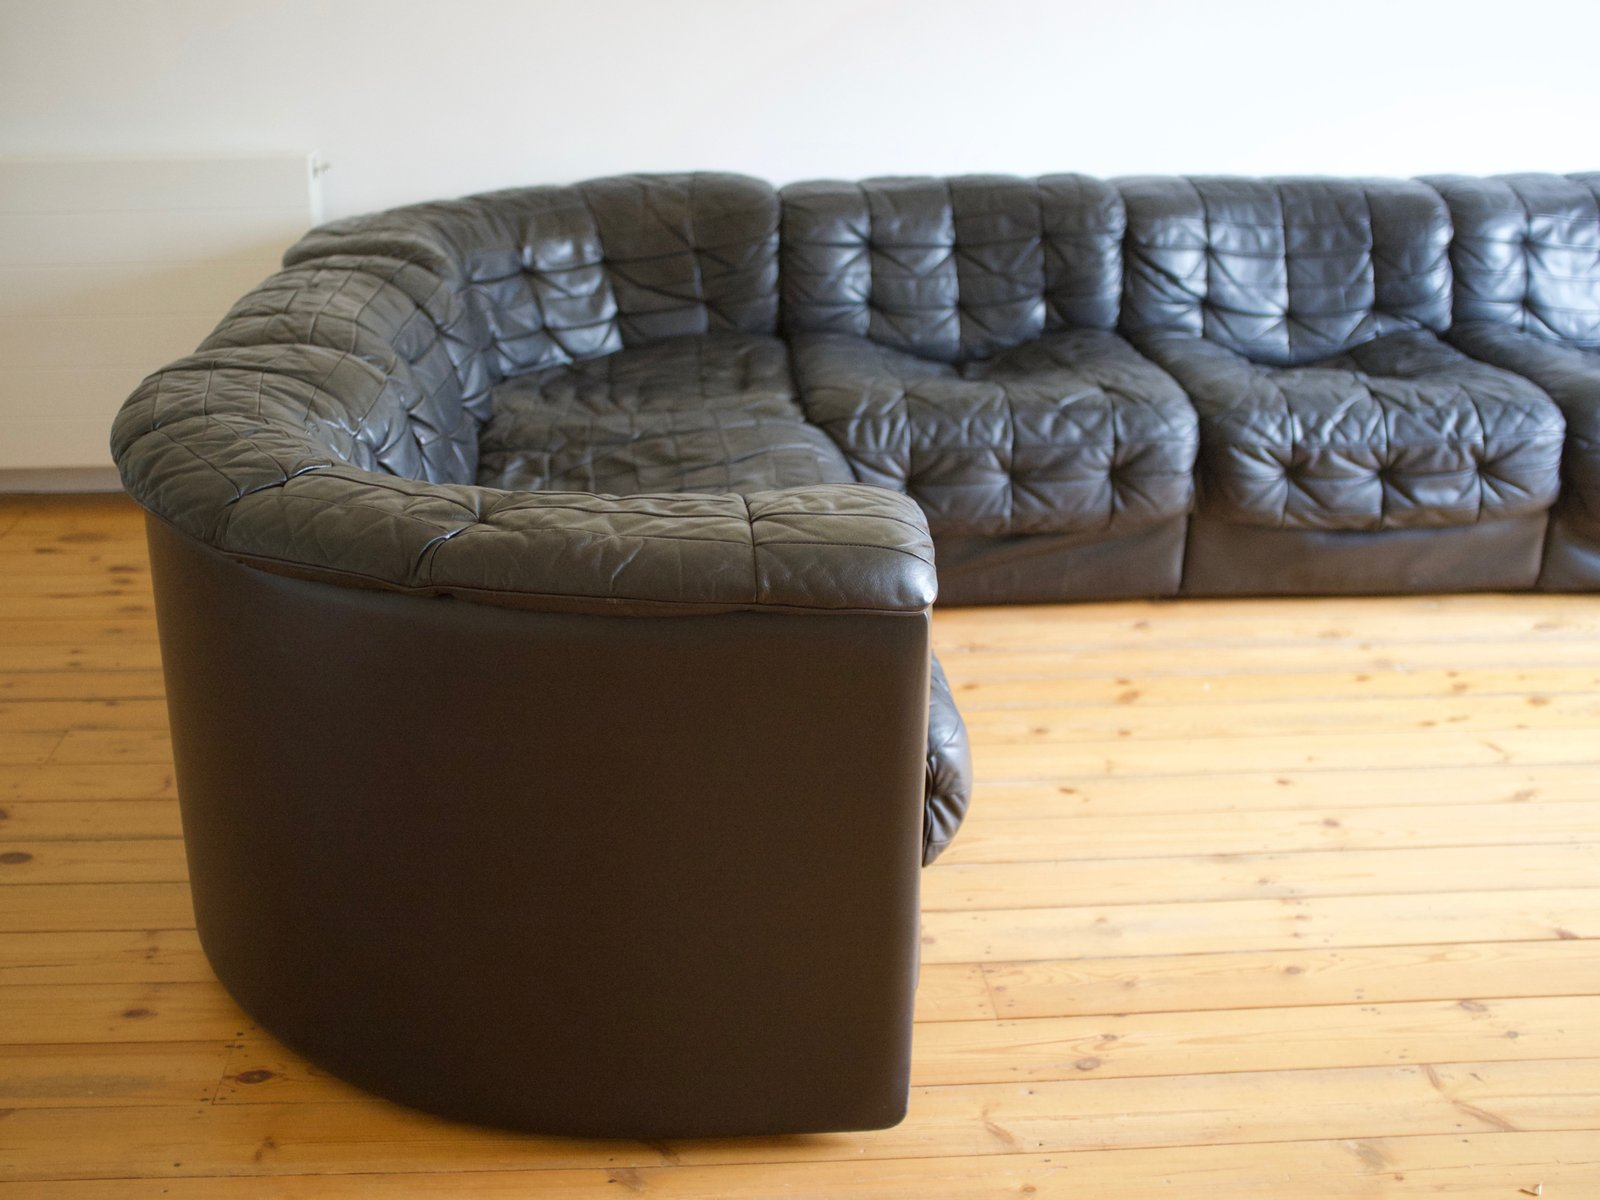 Modular Black Leather Sofa From De Sede 1970s For Sale At